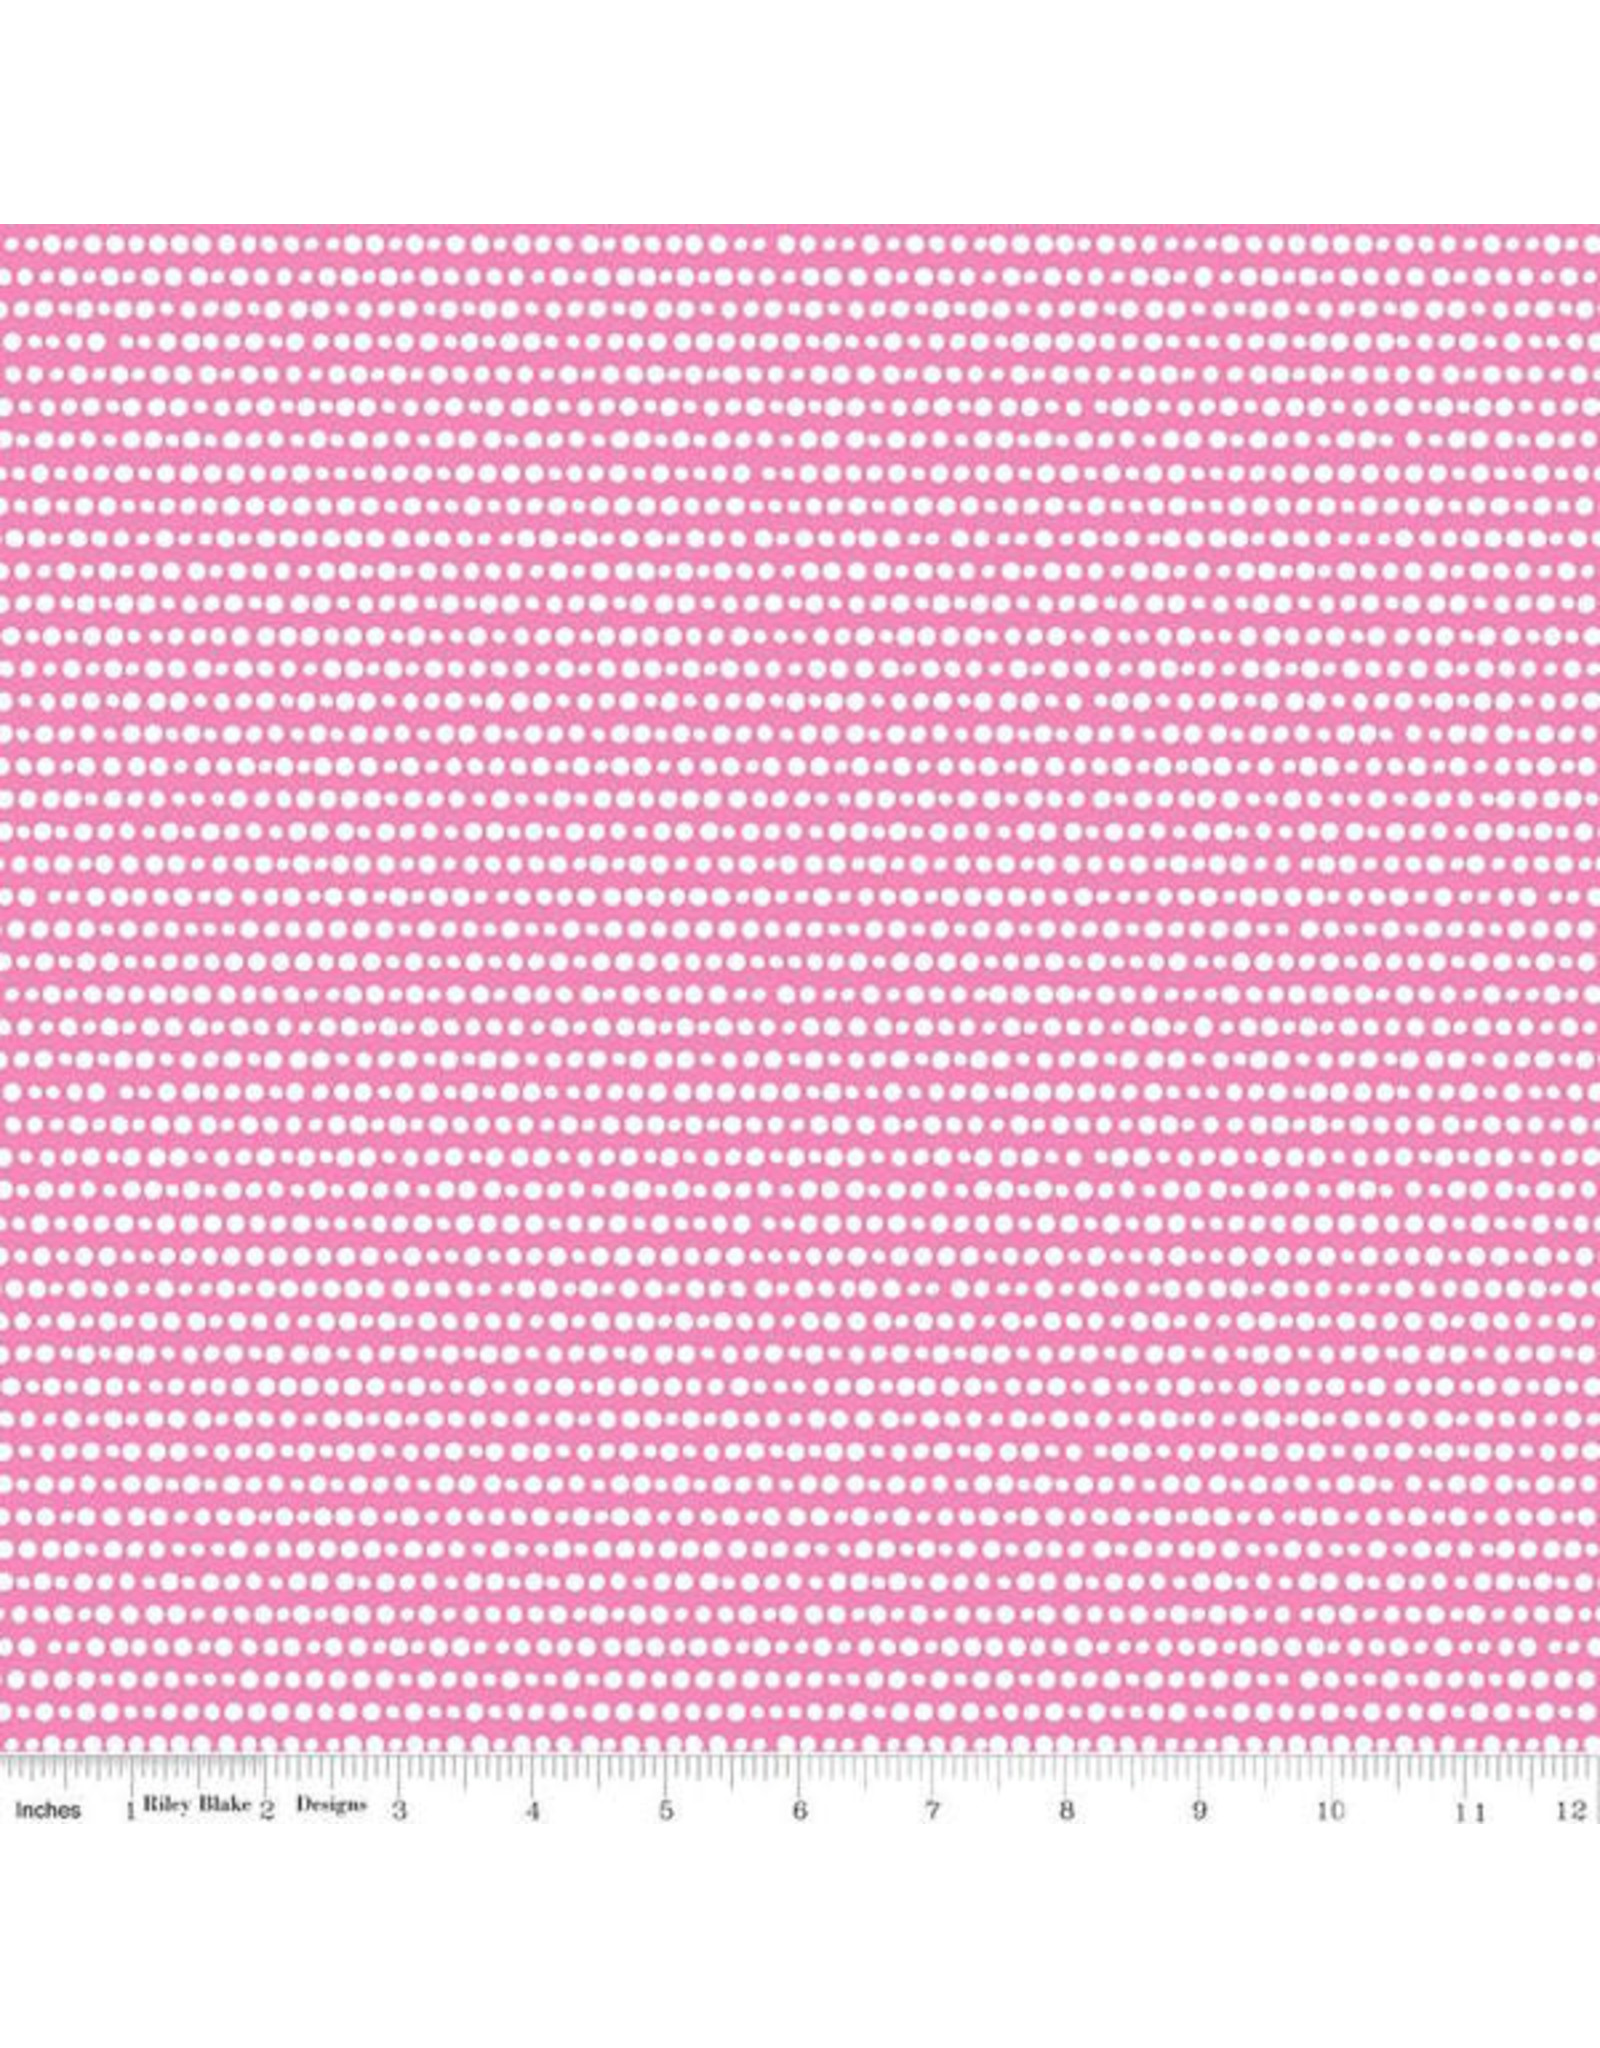 Riley Blake Designs GRL PWR - Dots Pink